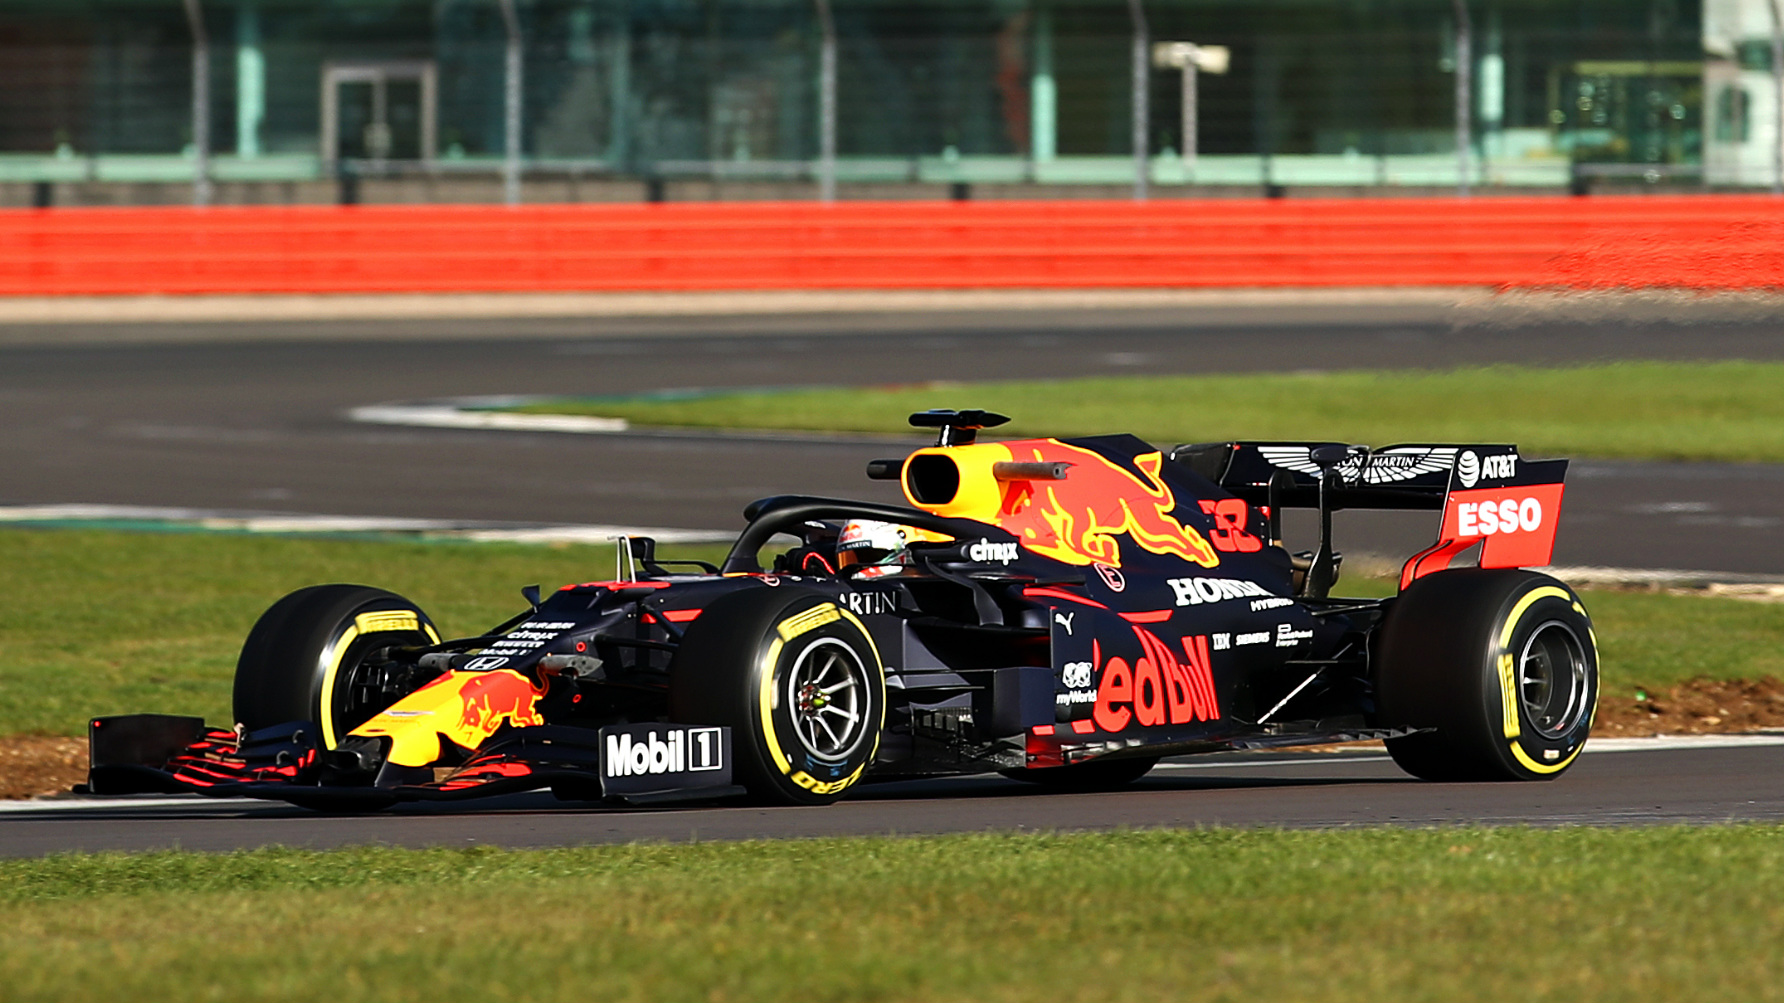 F1 2020 Aston Martin Red Bull Racing Rb16 The Auto Loons